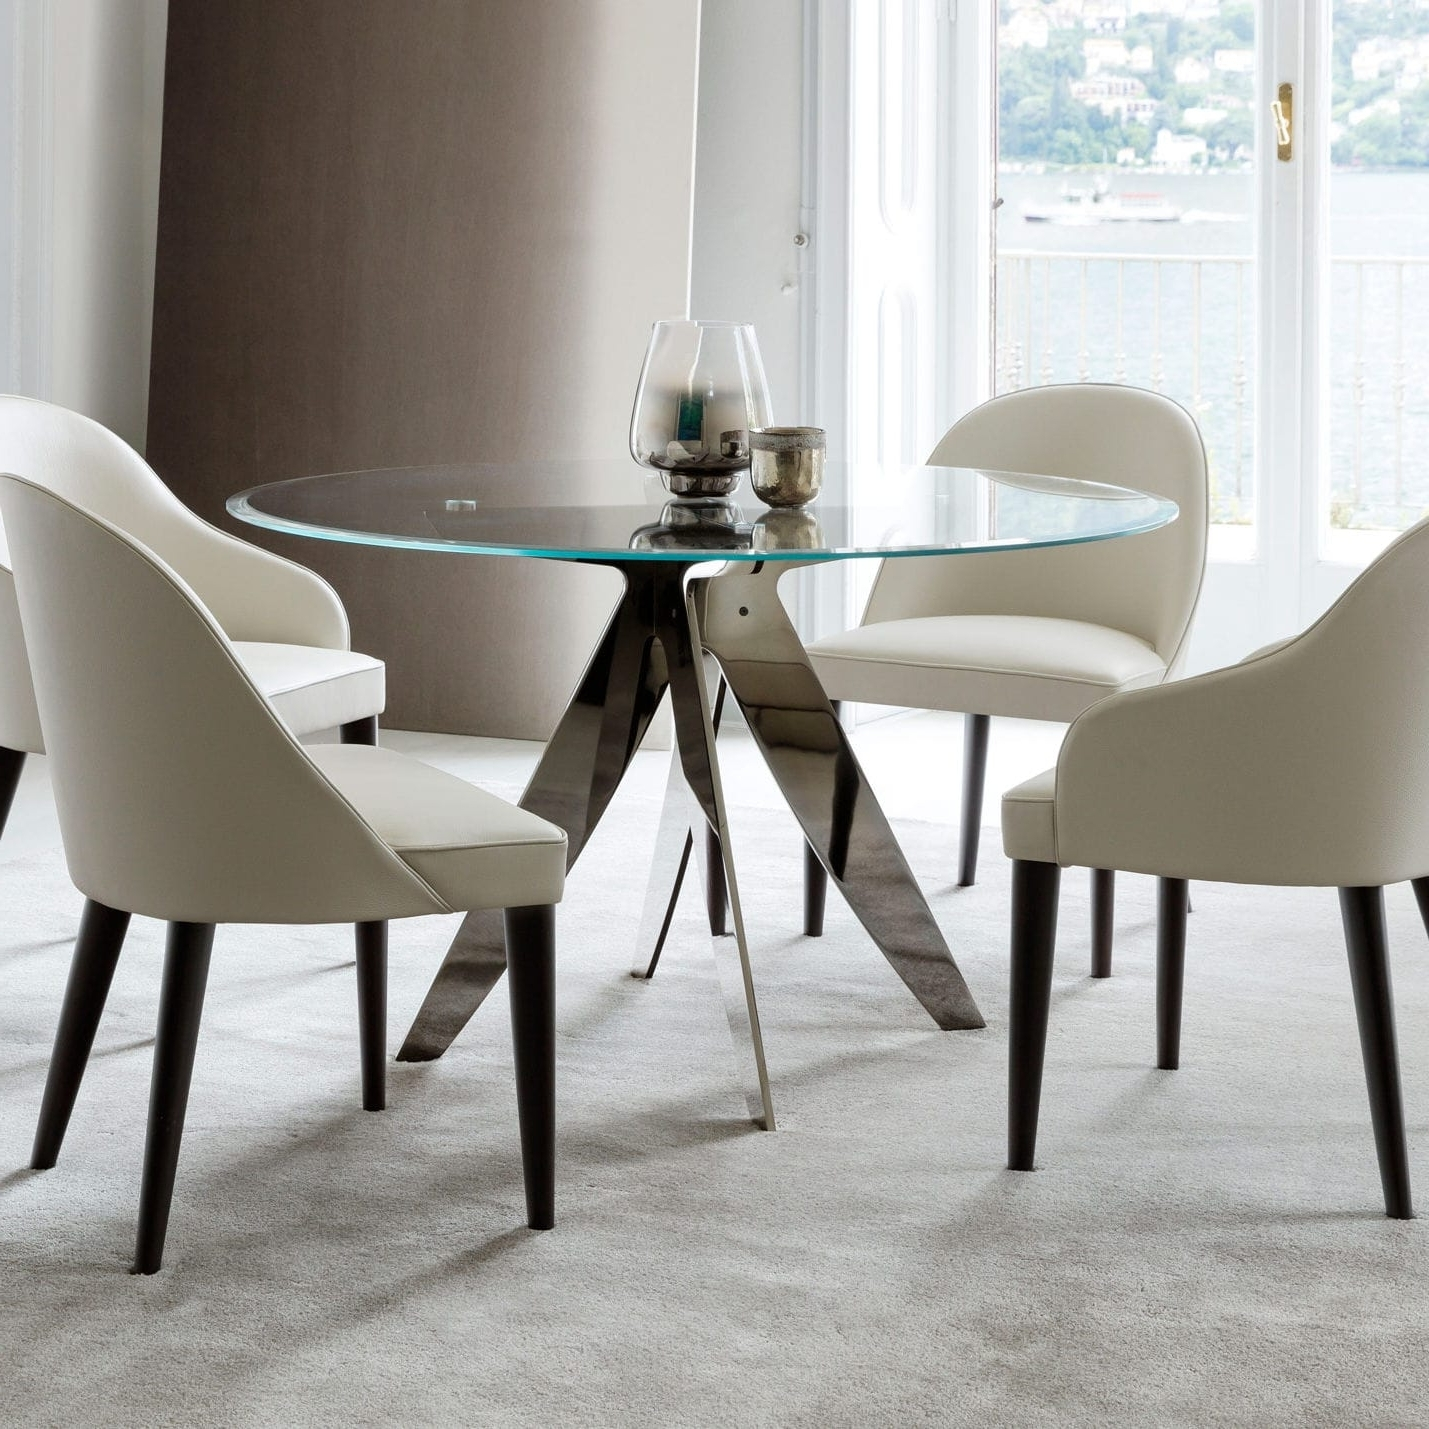 Crystal Dining Tables With Regard To Fashionable Contemporary Dining Table / Crystal / Round – Ring Rotondo – Berto (View 9 of 25)